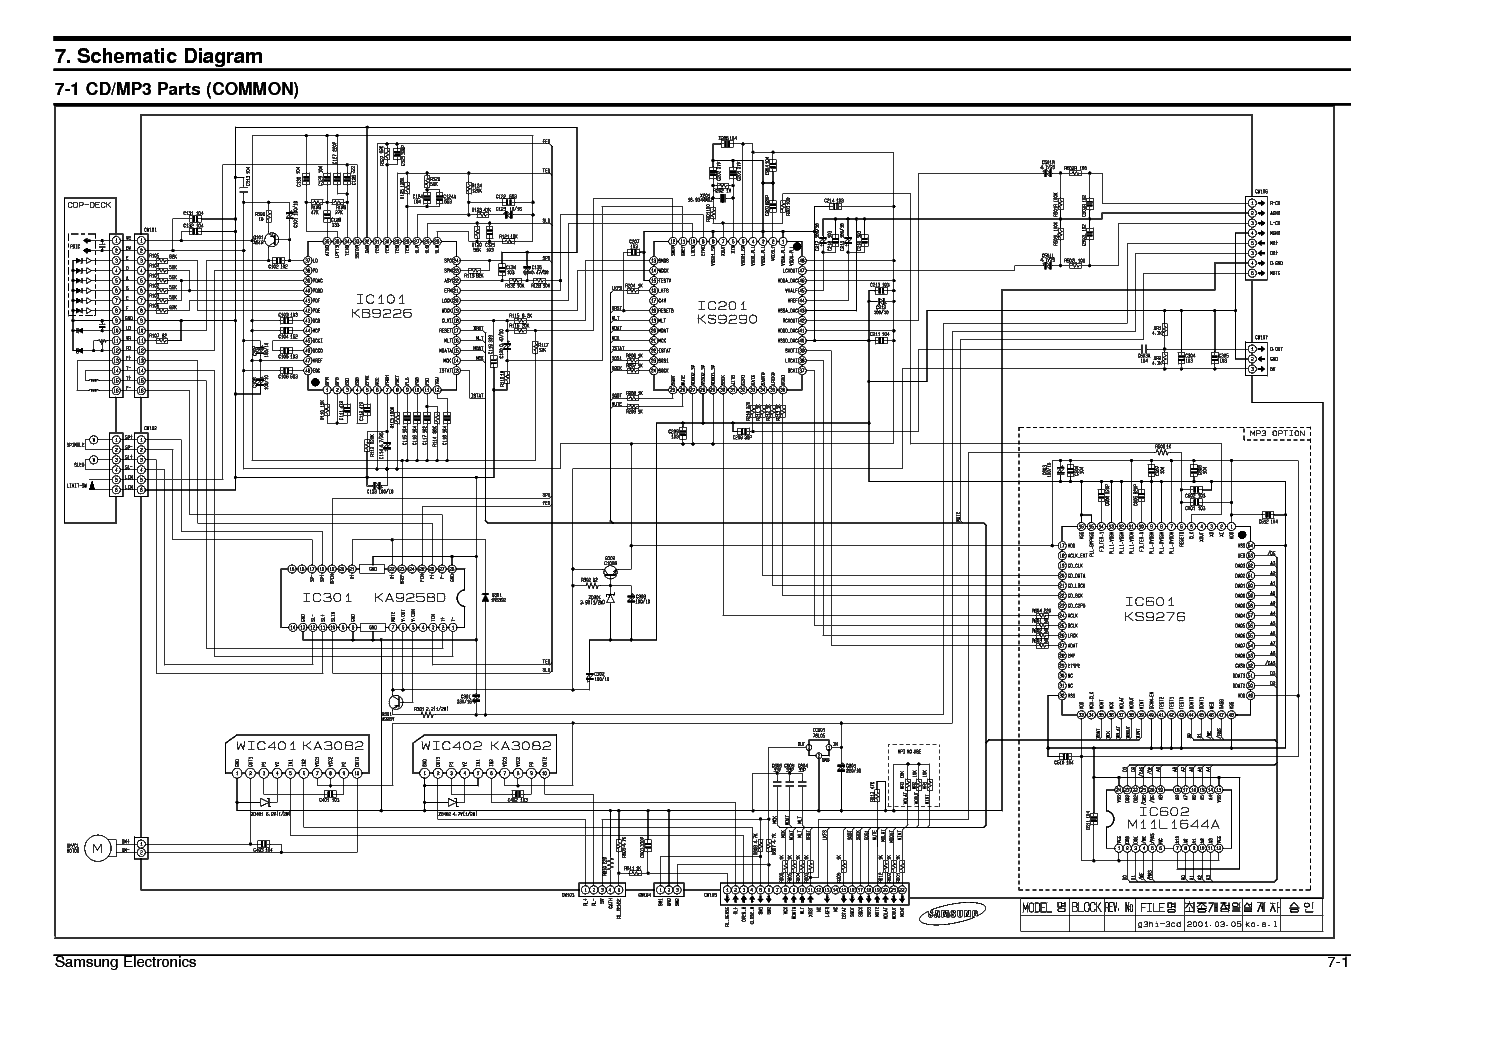 SAMSUNG RCD-590 Service Manual free download, schematics